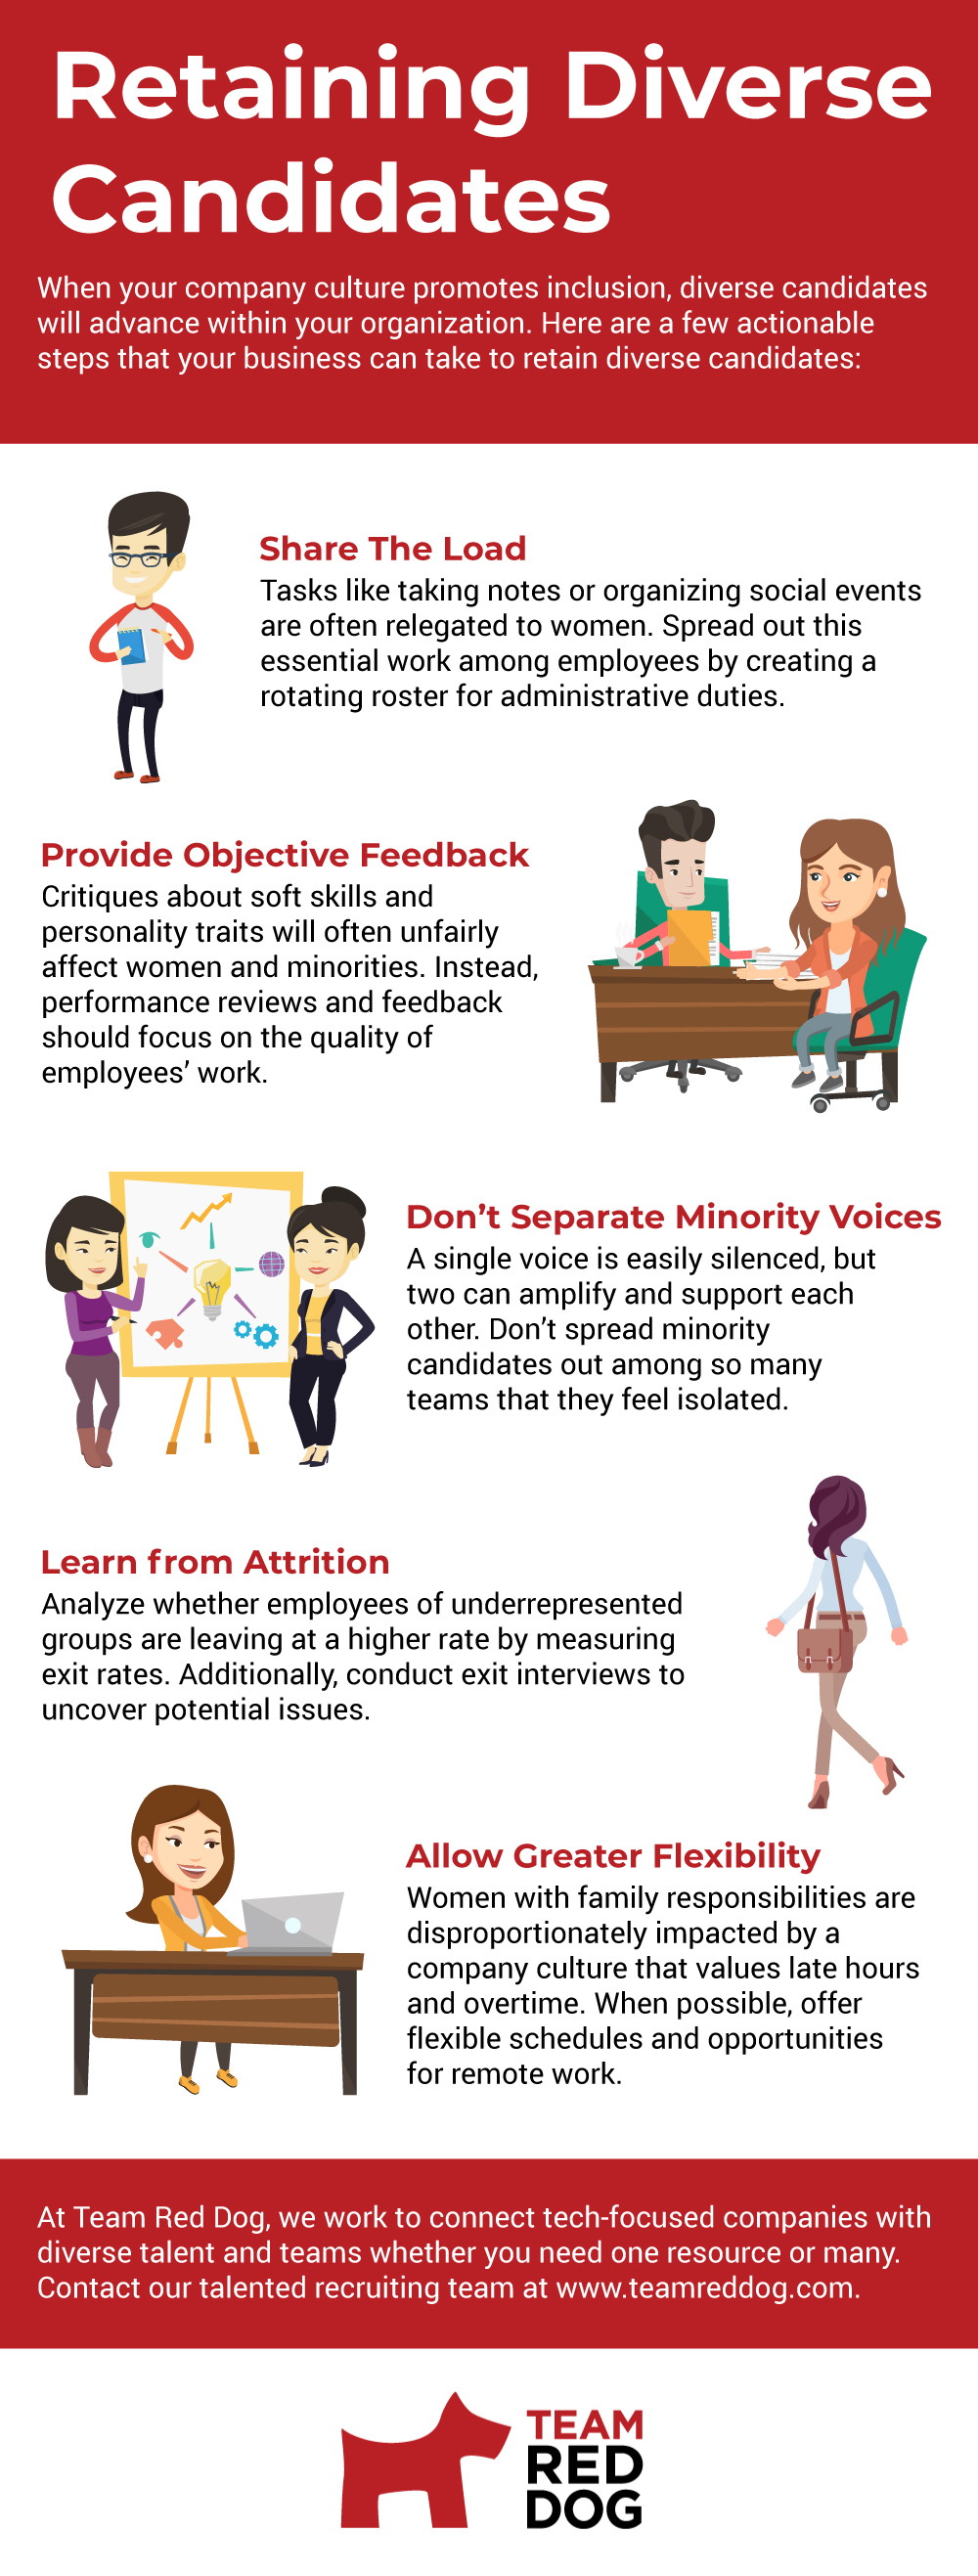 Actionable tips on retaining diverse hires